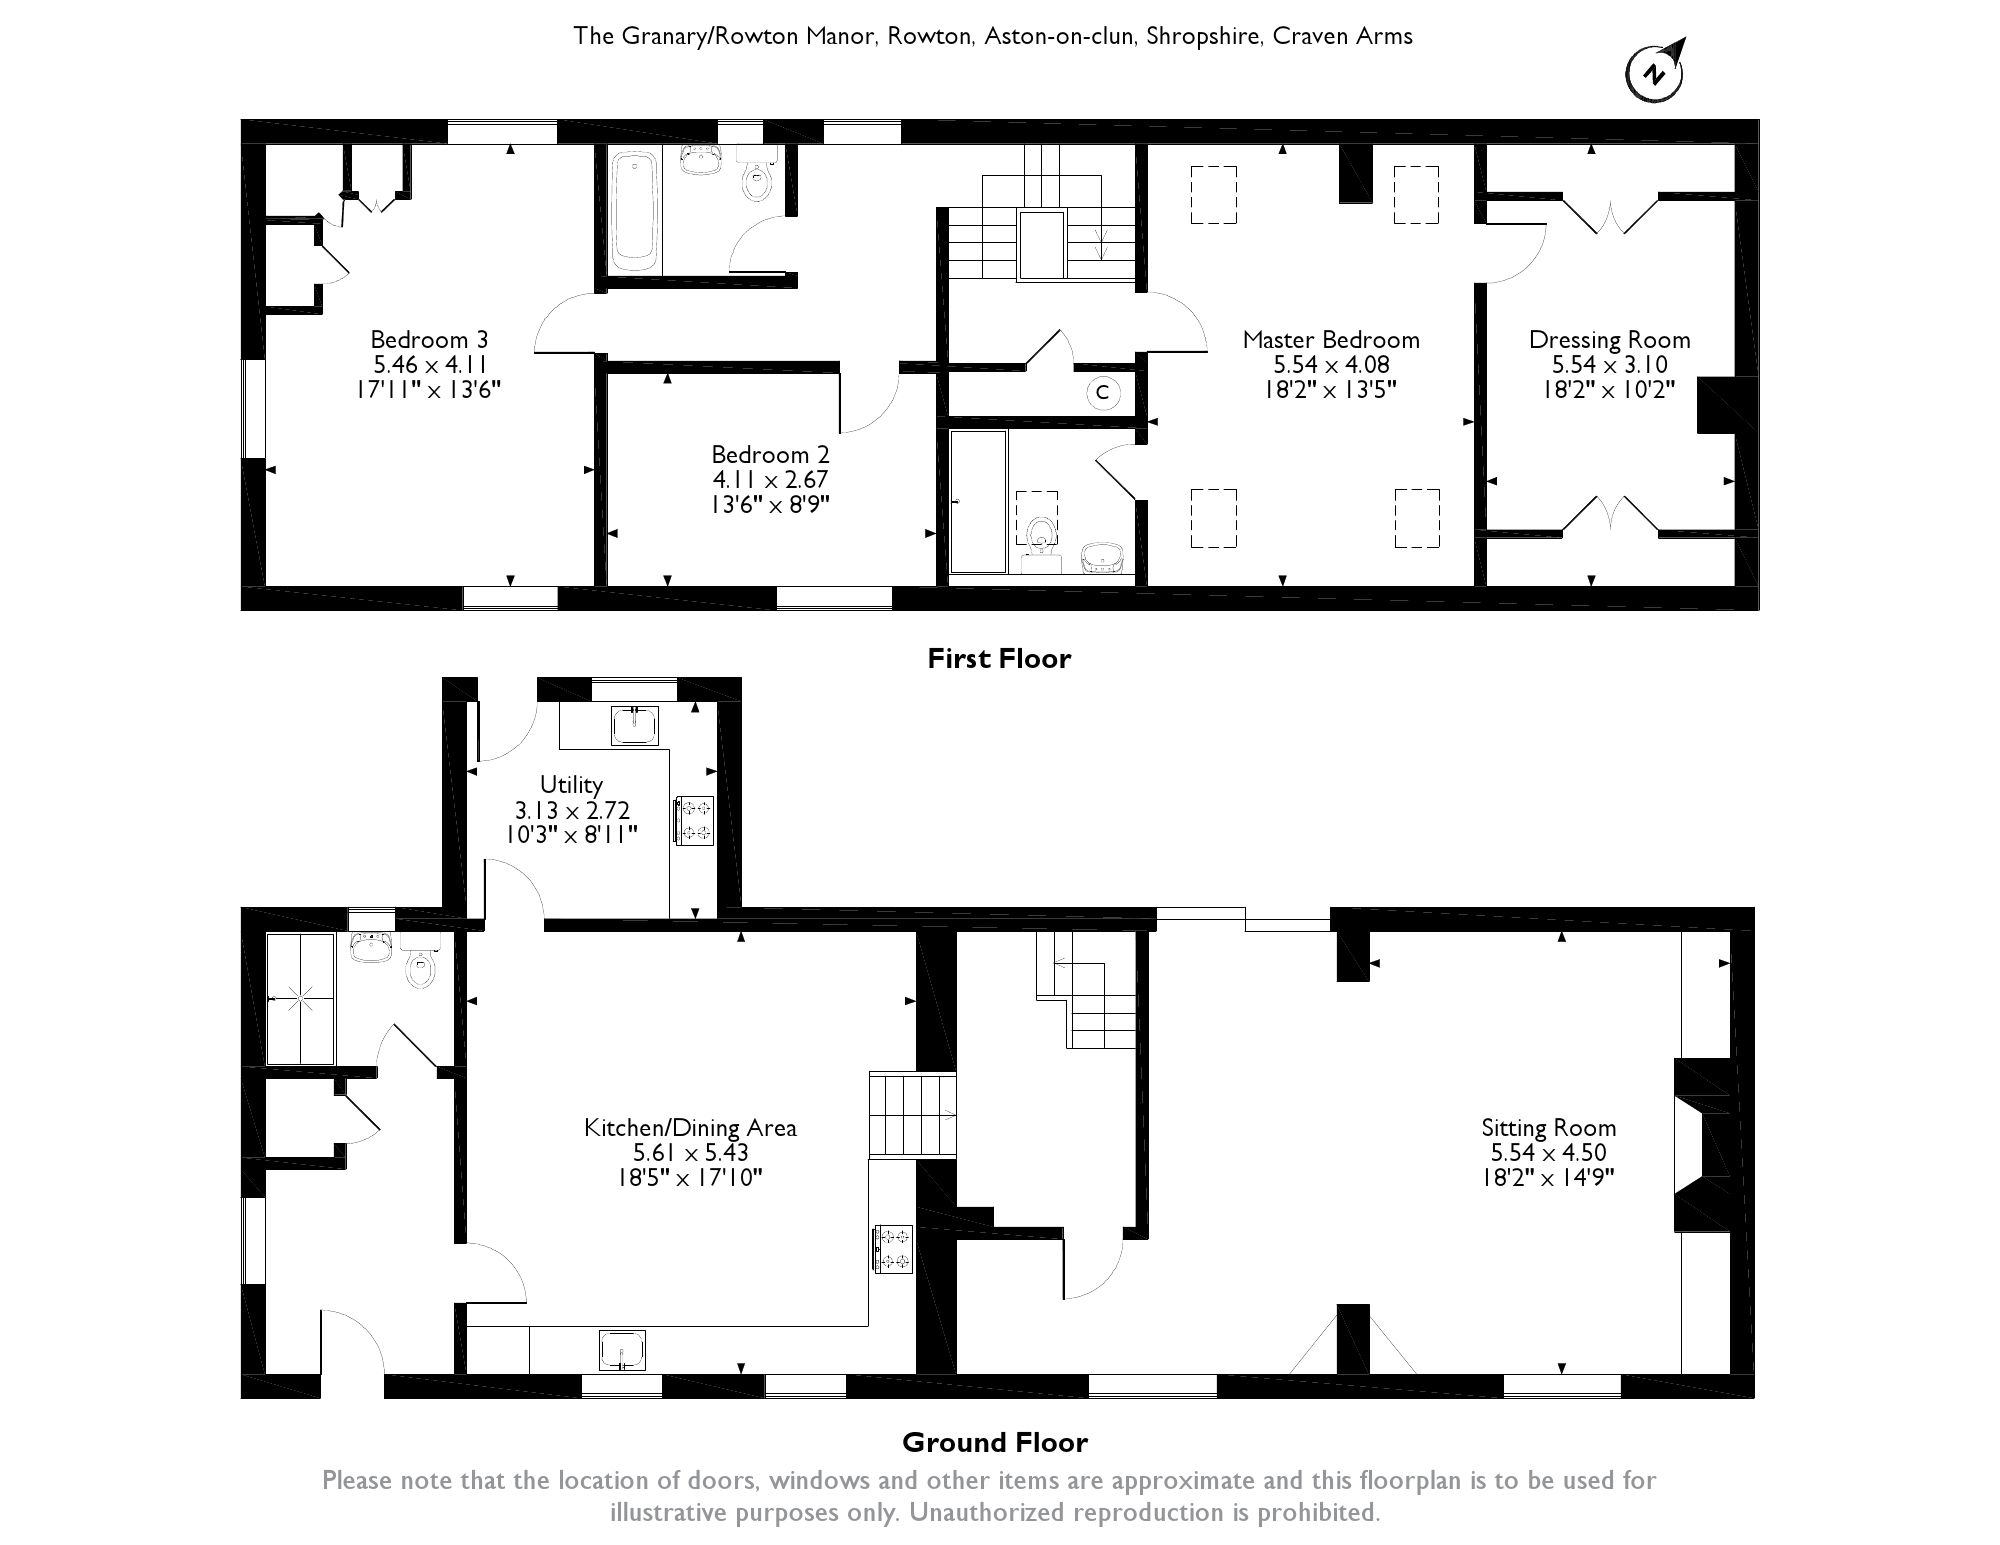 The Granary/Rowton Manor, Rowton, Craven Arms, SY7 floor plan